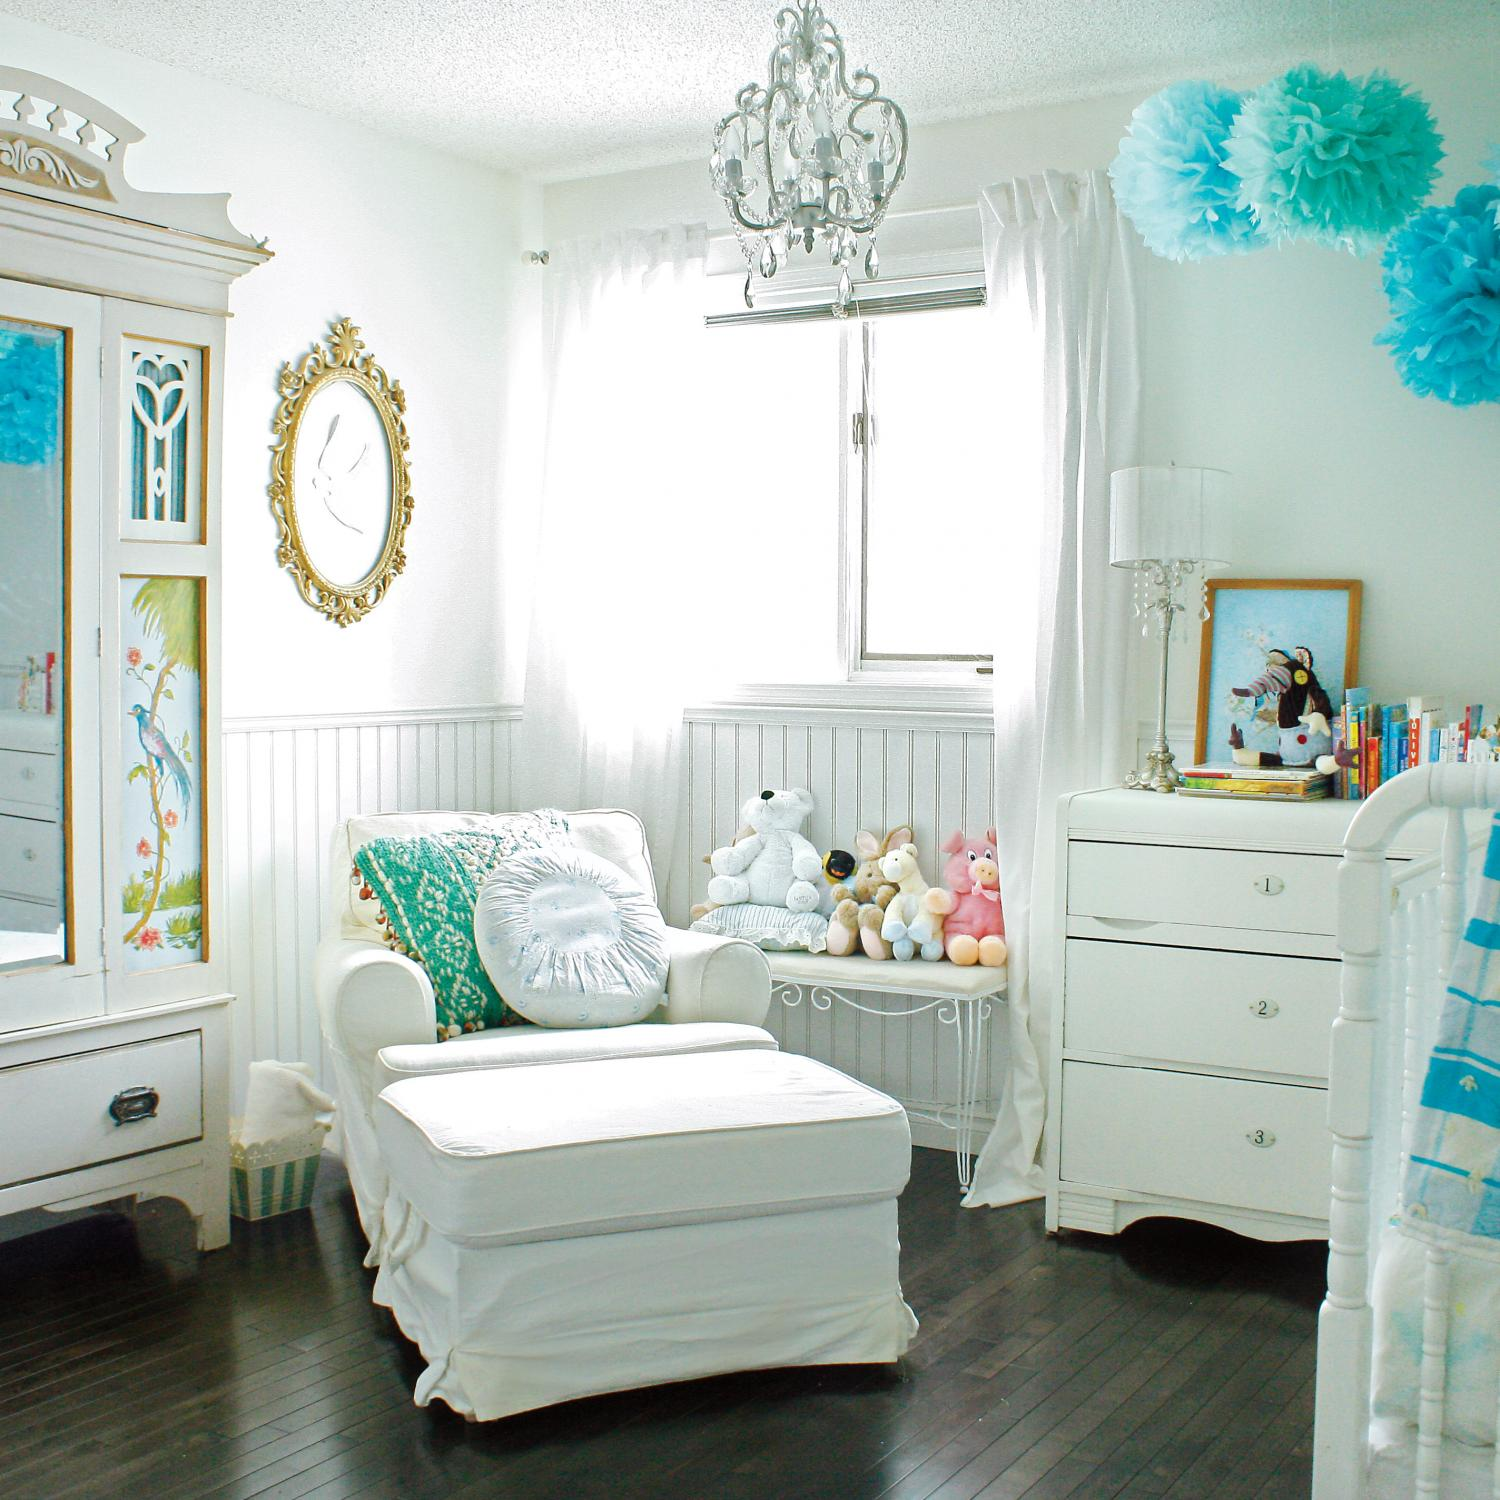 Baby Room Ideas Nursery Themes And Decor: Unique Nursery Decorating Ideas